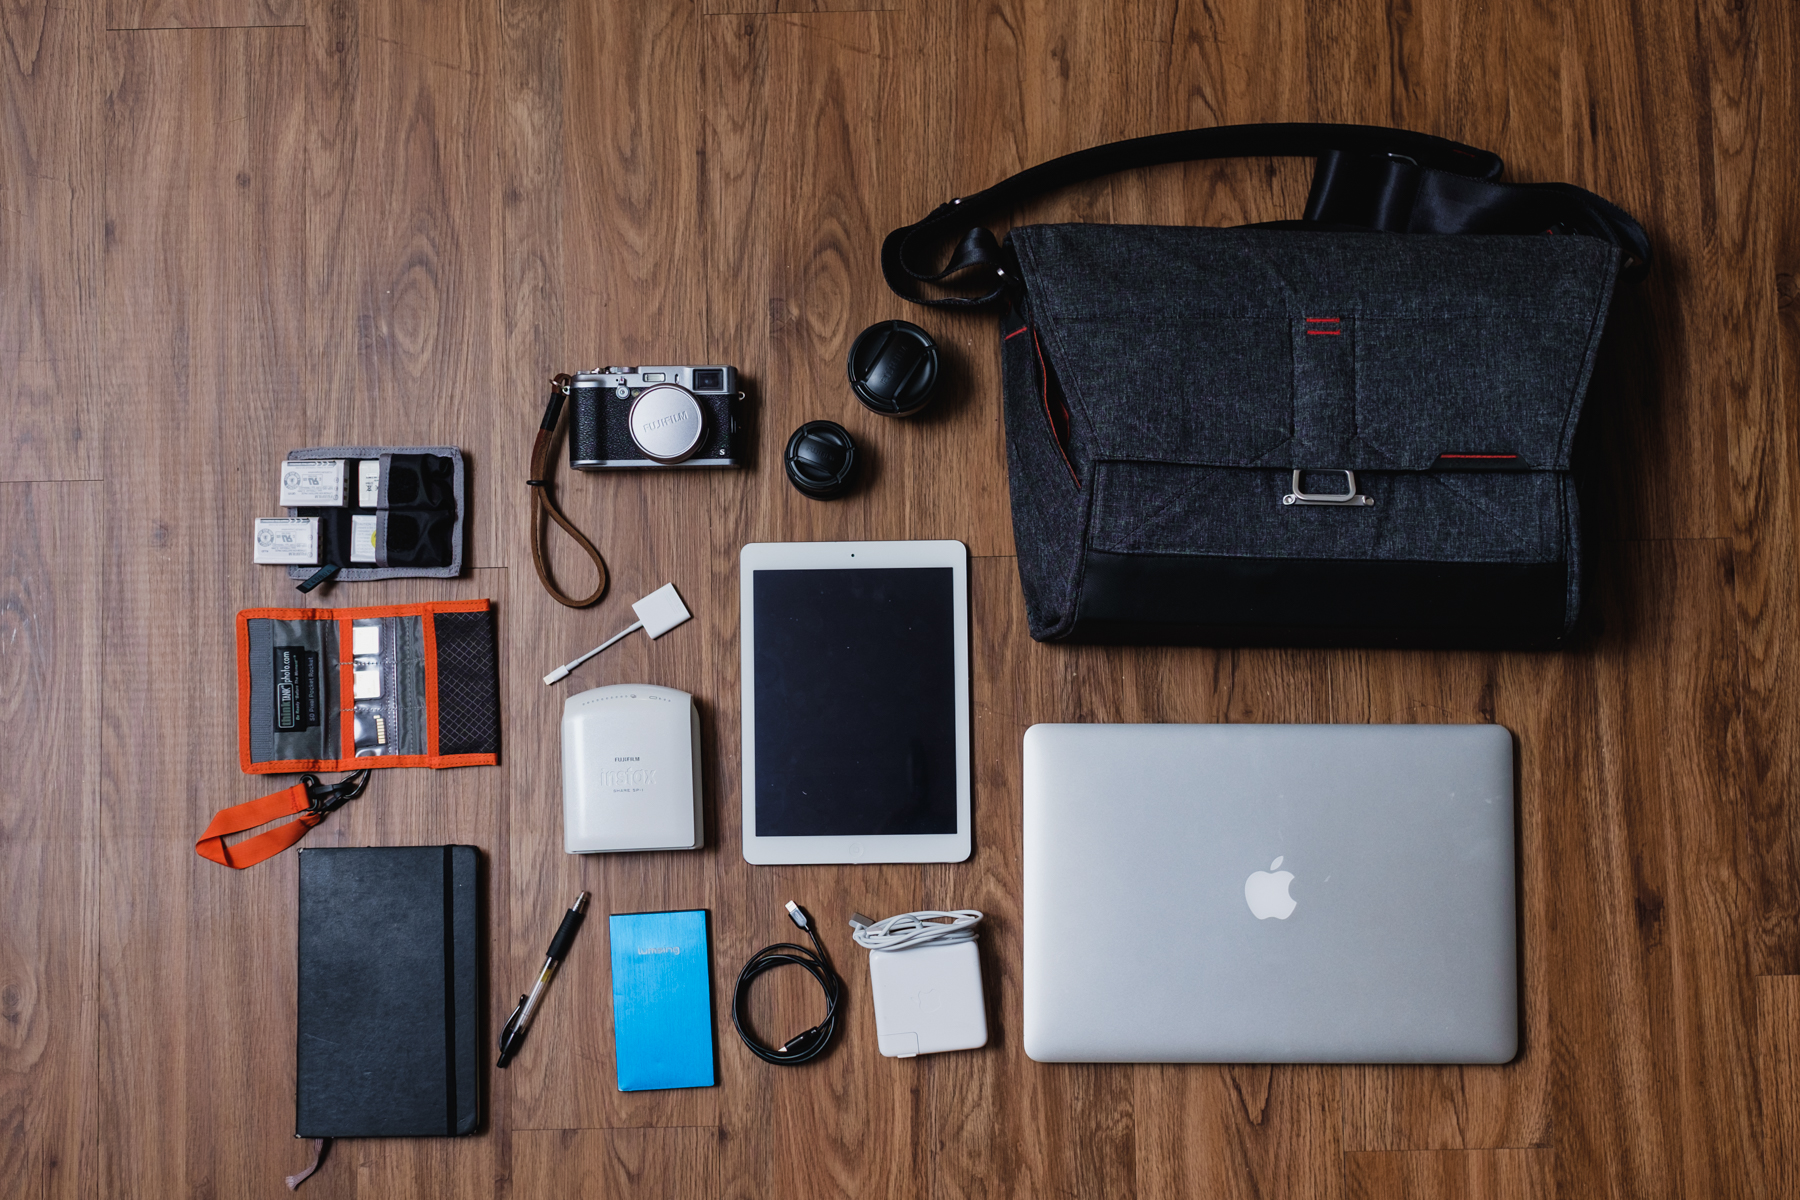 """This is my travel setup 'Lets go somewhere bag' - Think Tank Photo Battery Holder, 4x Fujifilm NP-95 Batteries, Think Tank Photo SD Pixel Pocket Rocket,SD Cards, Moleskine notebook with Pilot G-2 Pen,  Fujifilm X100s  camera, Fujifilm  WCL-X100  &  TCL-X100 Conversion Lenses ,Apple iPad Air, Apple Lighting to SD Card Adapter,    Fujifilm Instax  Printer SP-1   , Portable charger, Apple Lighting to USB Cable,Apple MagSafe Charger, and  Apple Macbook Pro 15"""""""